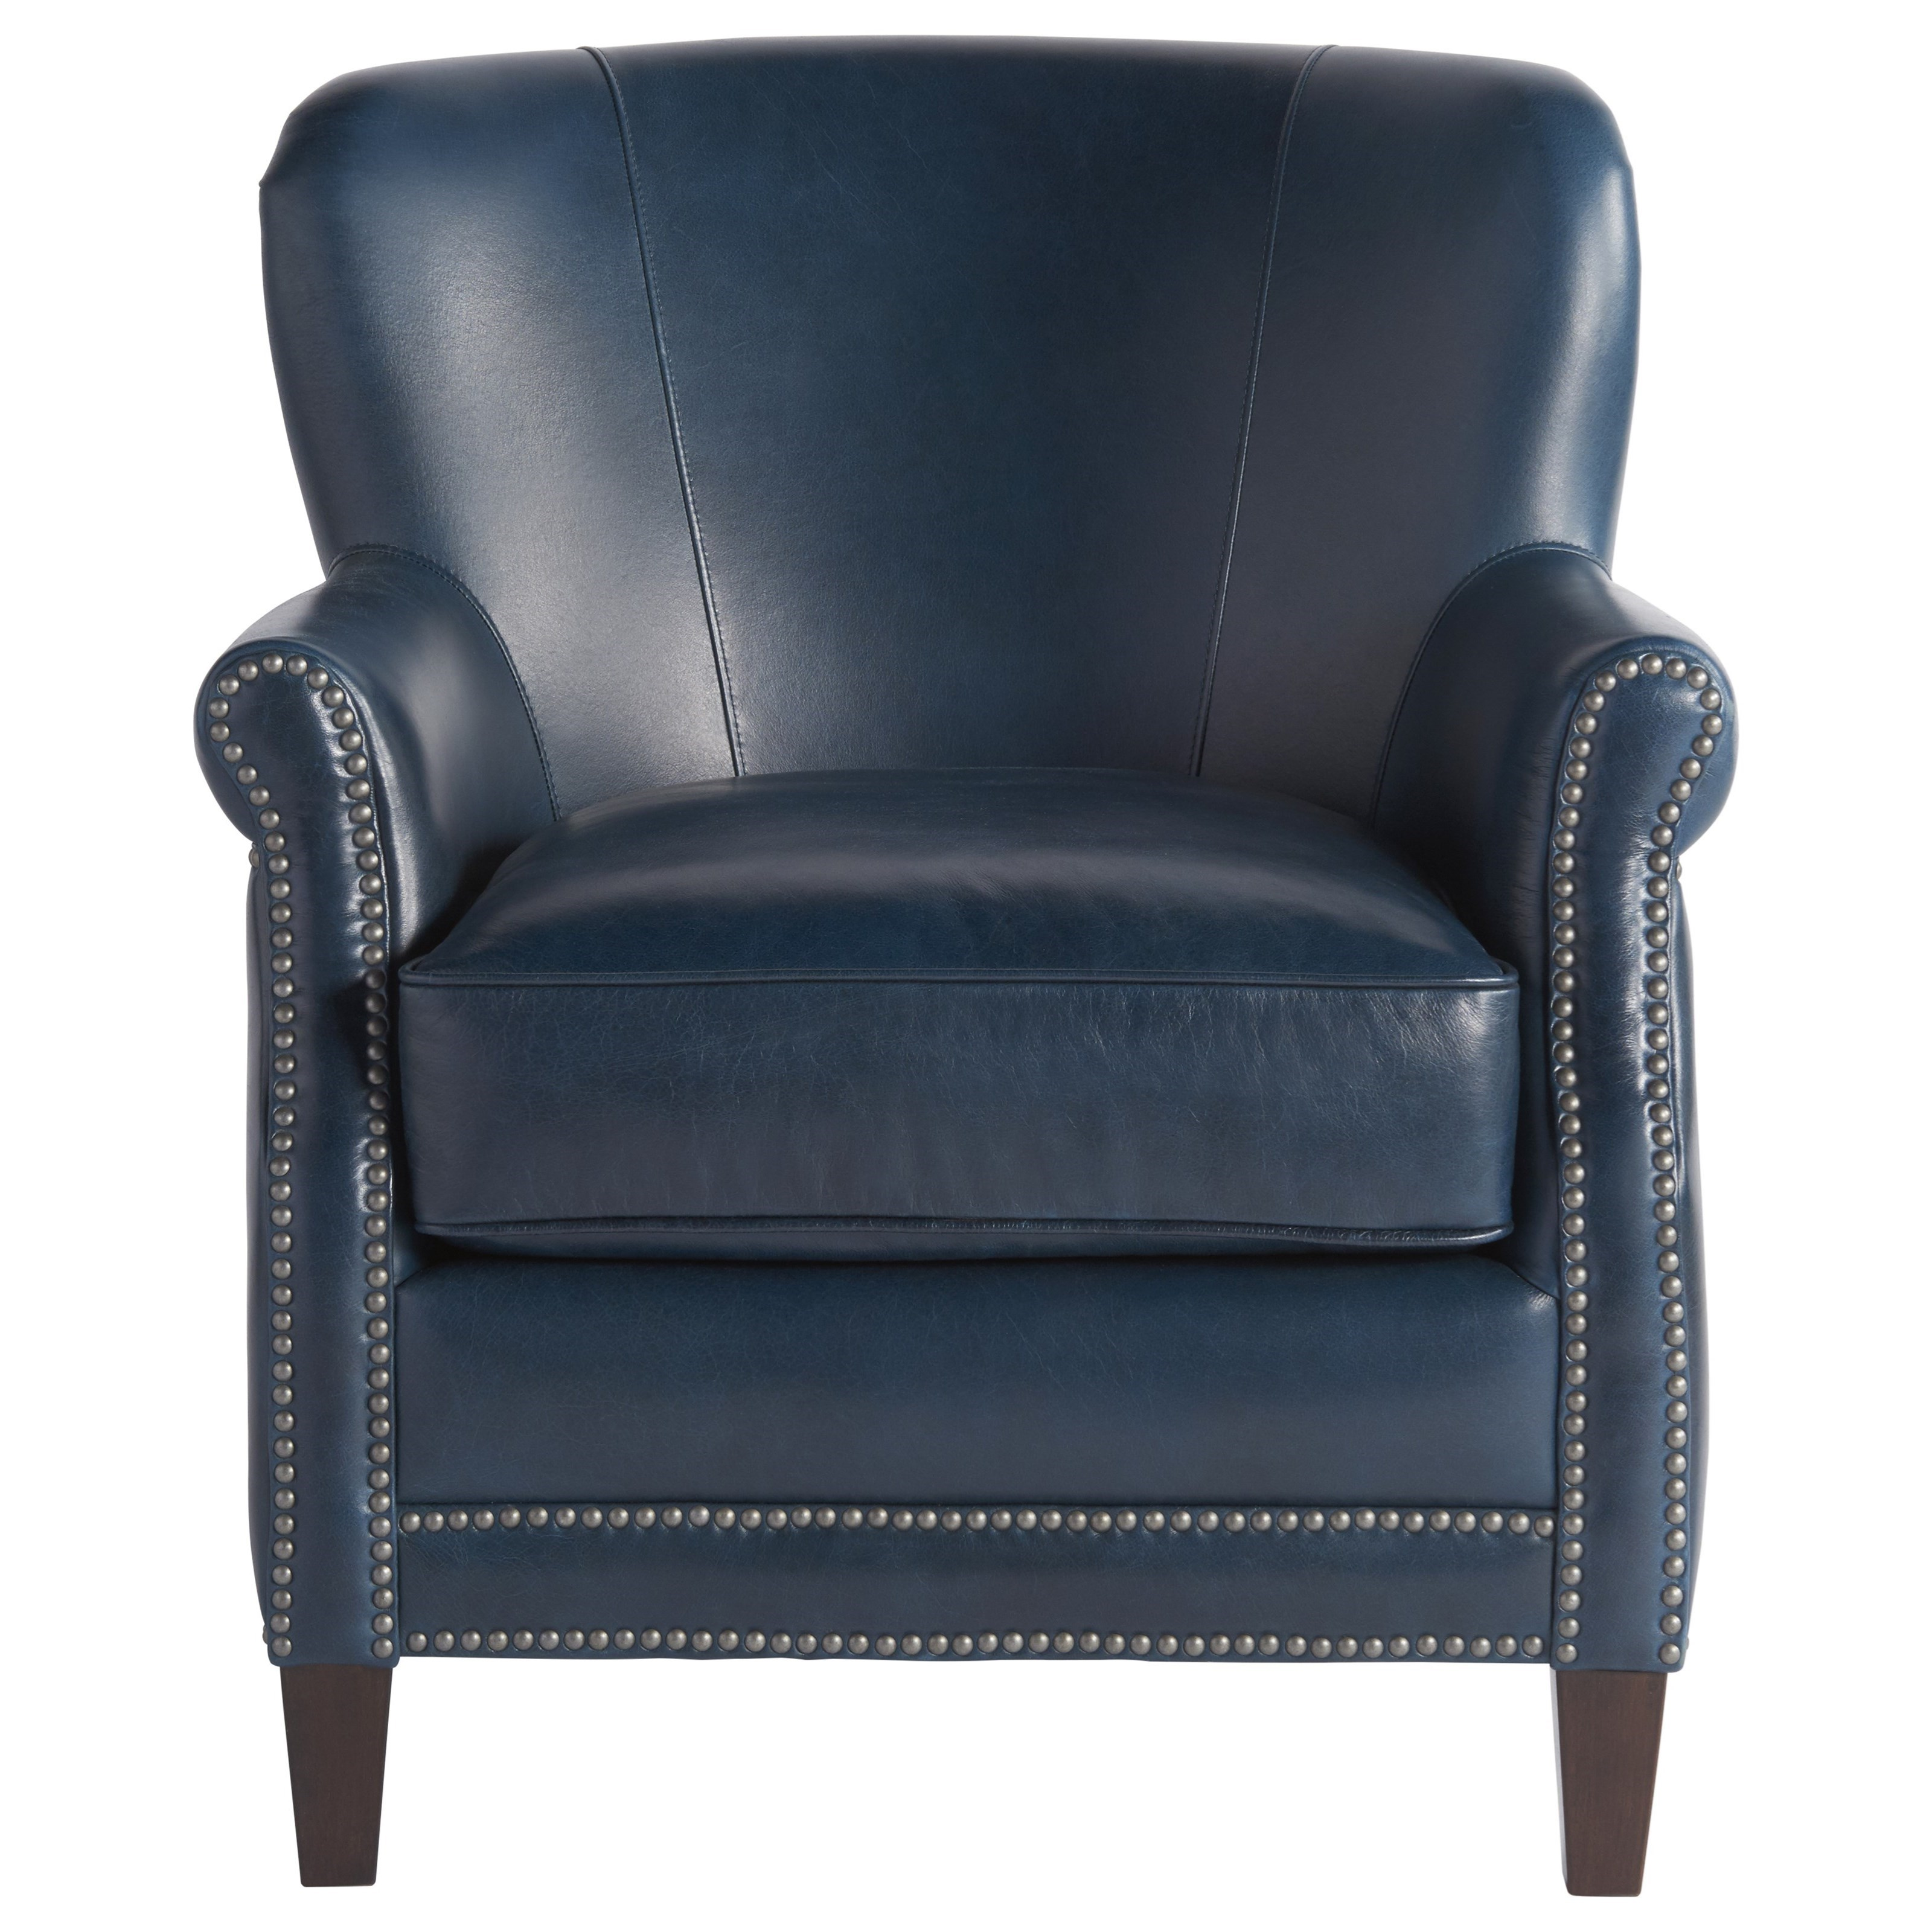 Leather Eden Accent Chair by Universal at Baer's Furniture